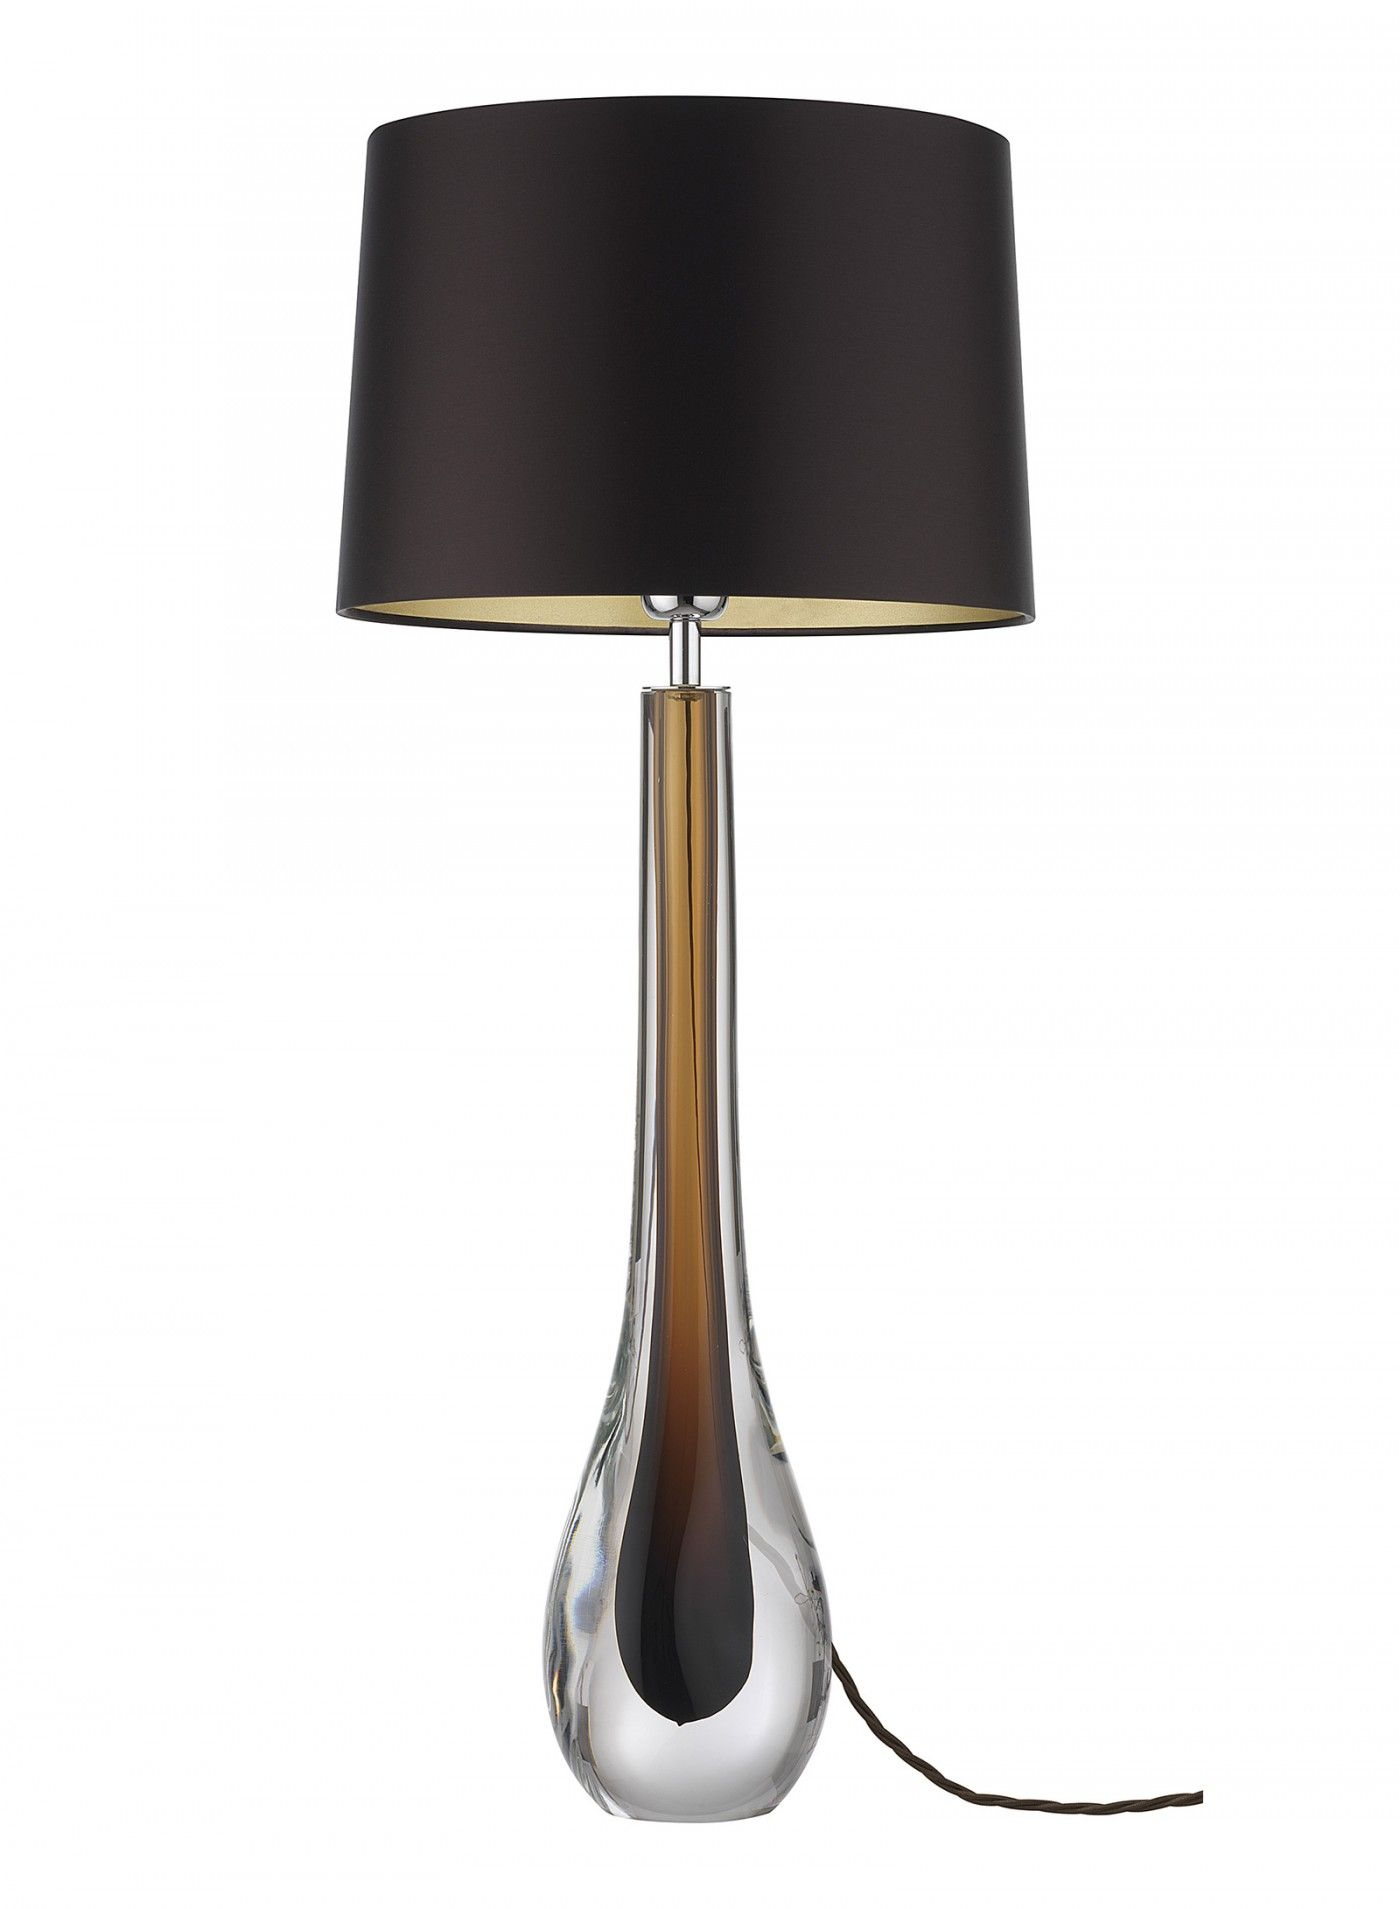 Pelorus garnet table lamp buy online now gifts pinterest pelorus garnet table lamp buy online now geotapseo Image collections